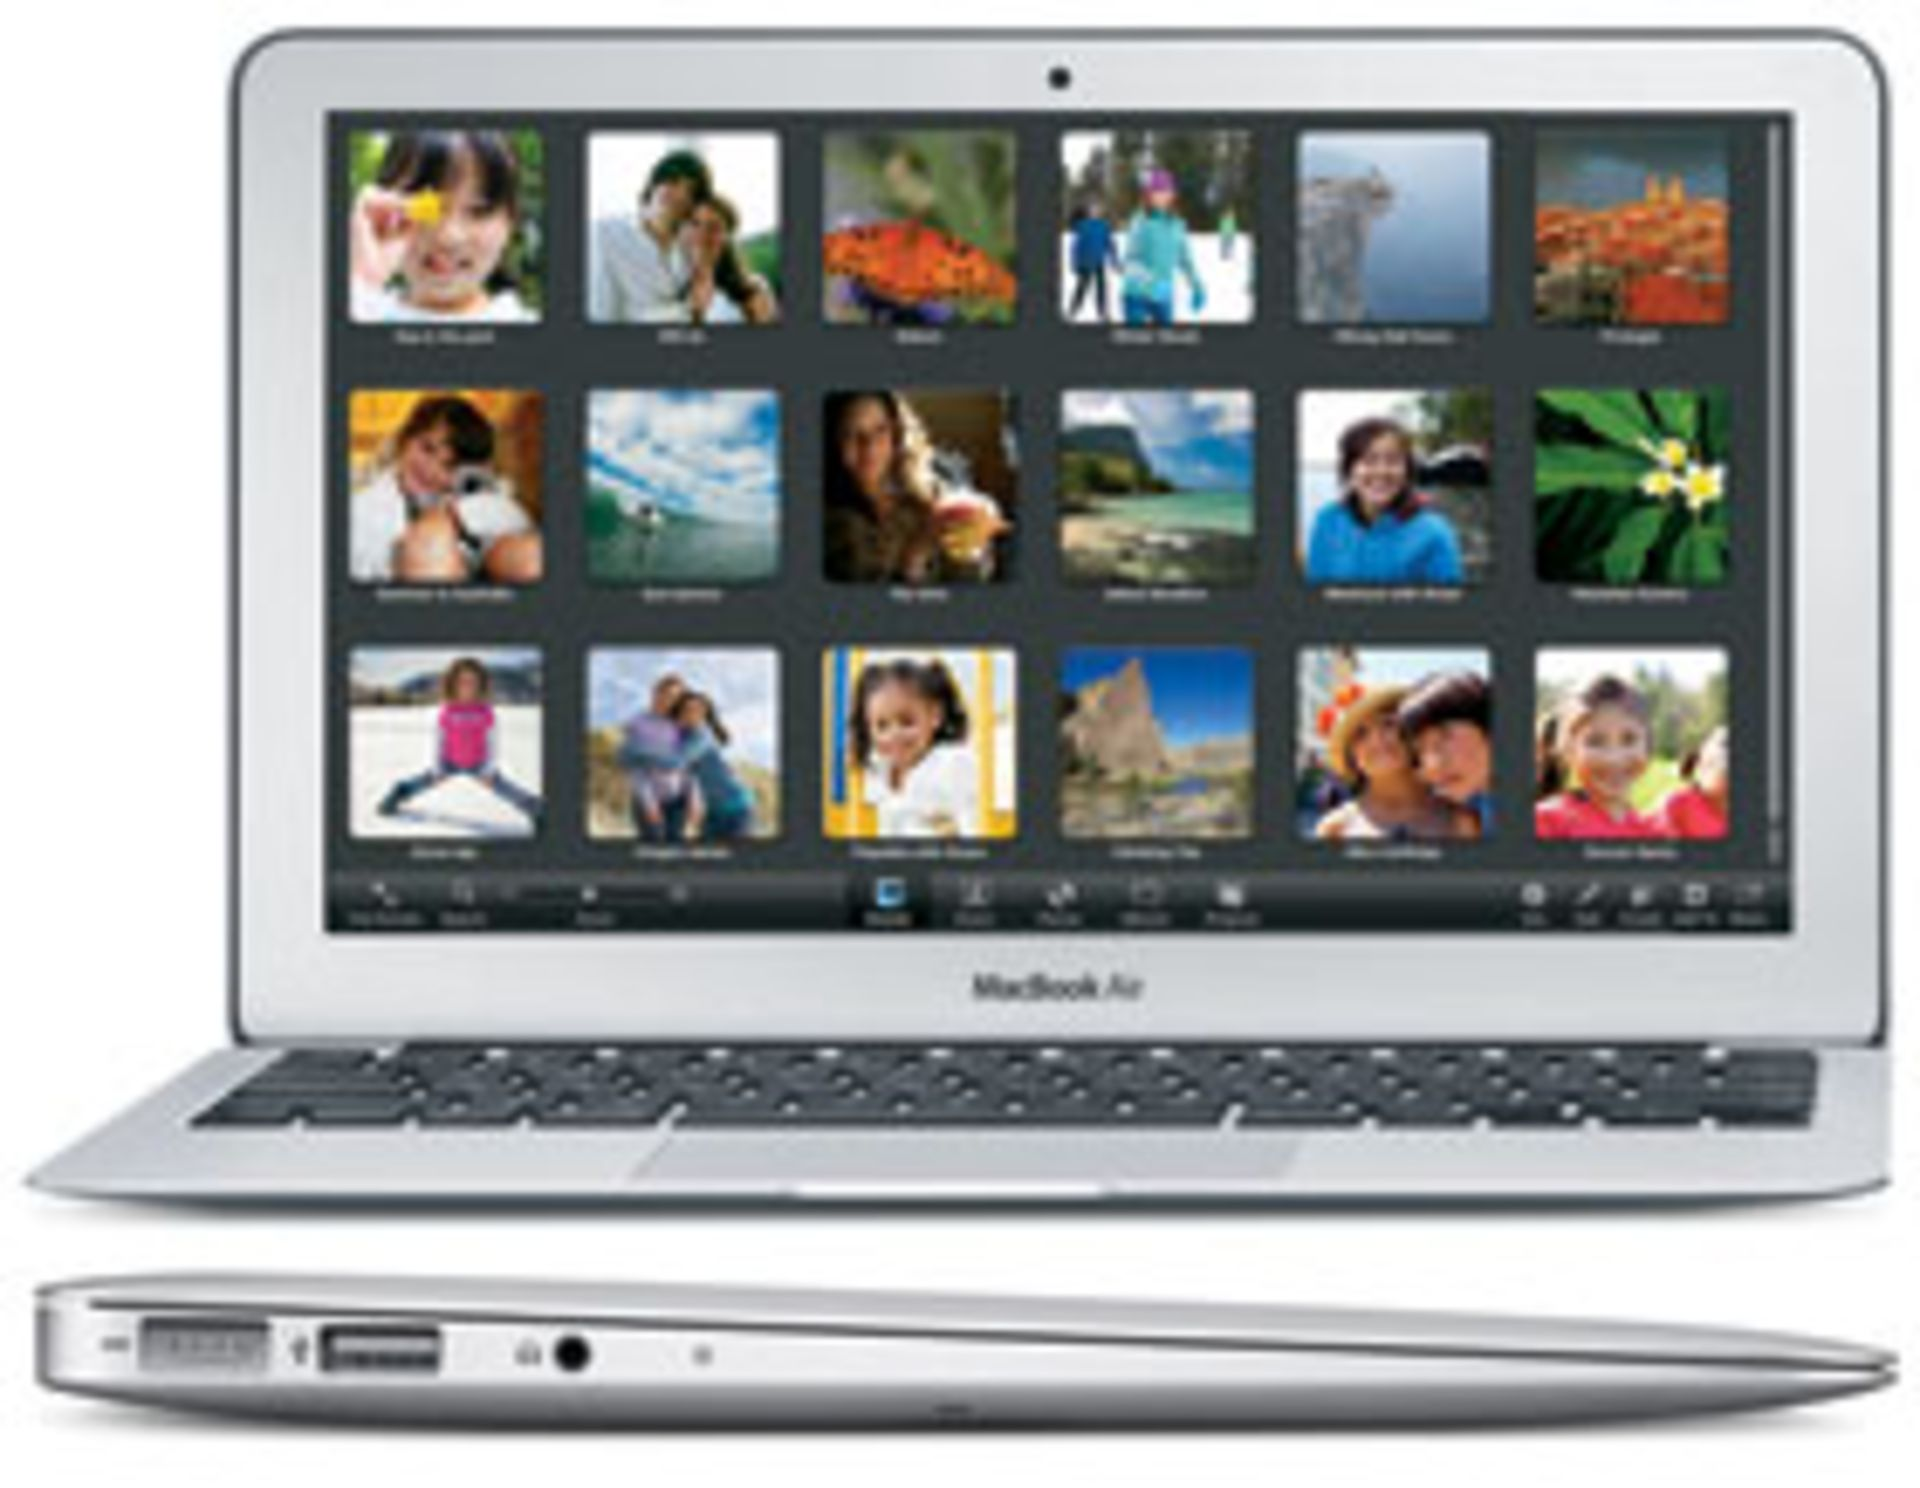 Lot 60043 - V Grade B Macbook Air 11.6 Inch Core 2 Duo - 64GB SSD - A1370 - Available Approx 7 Working Days